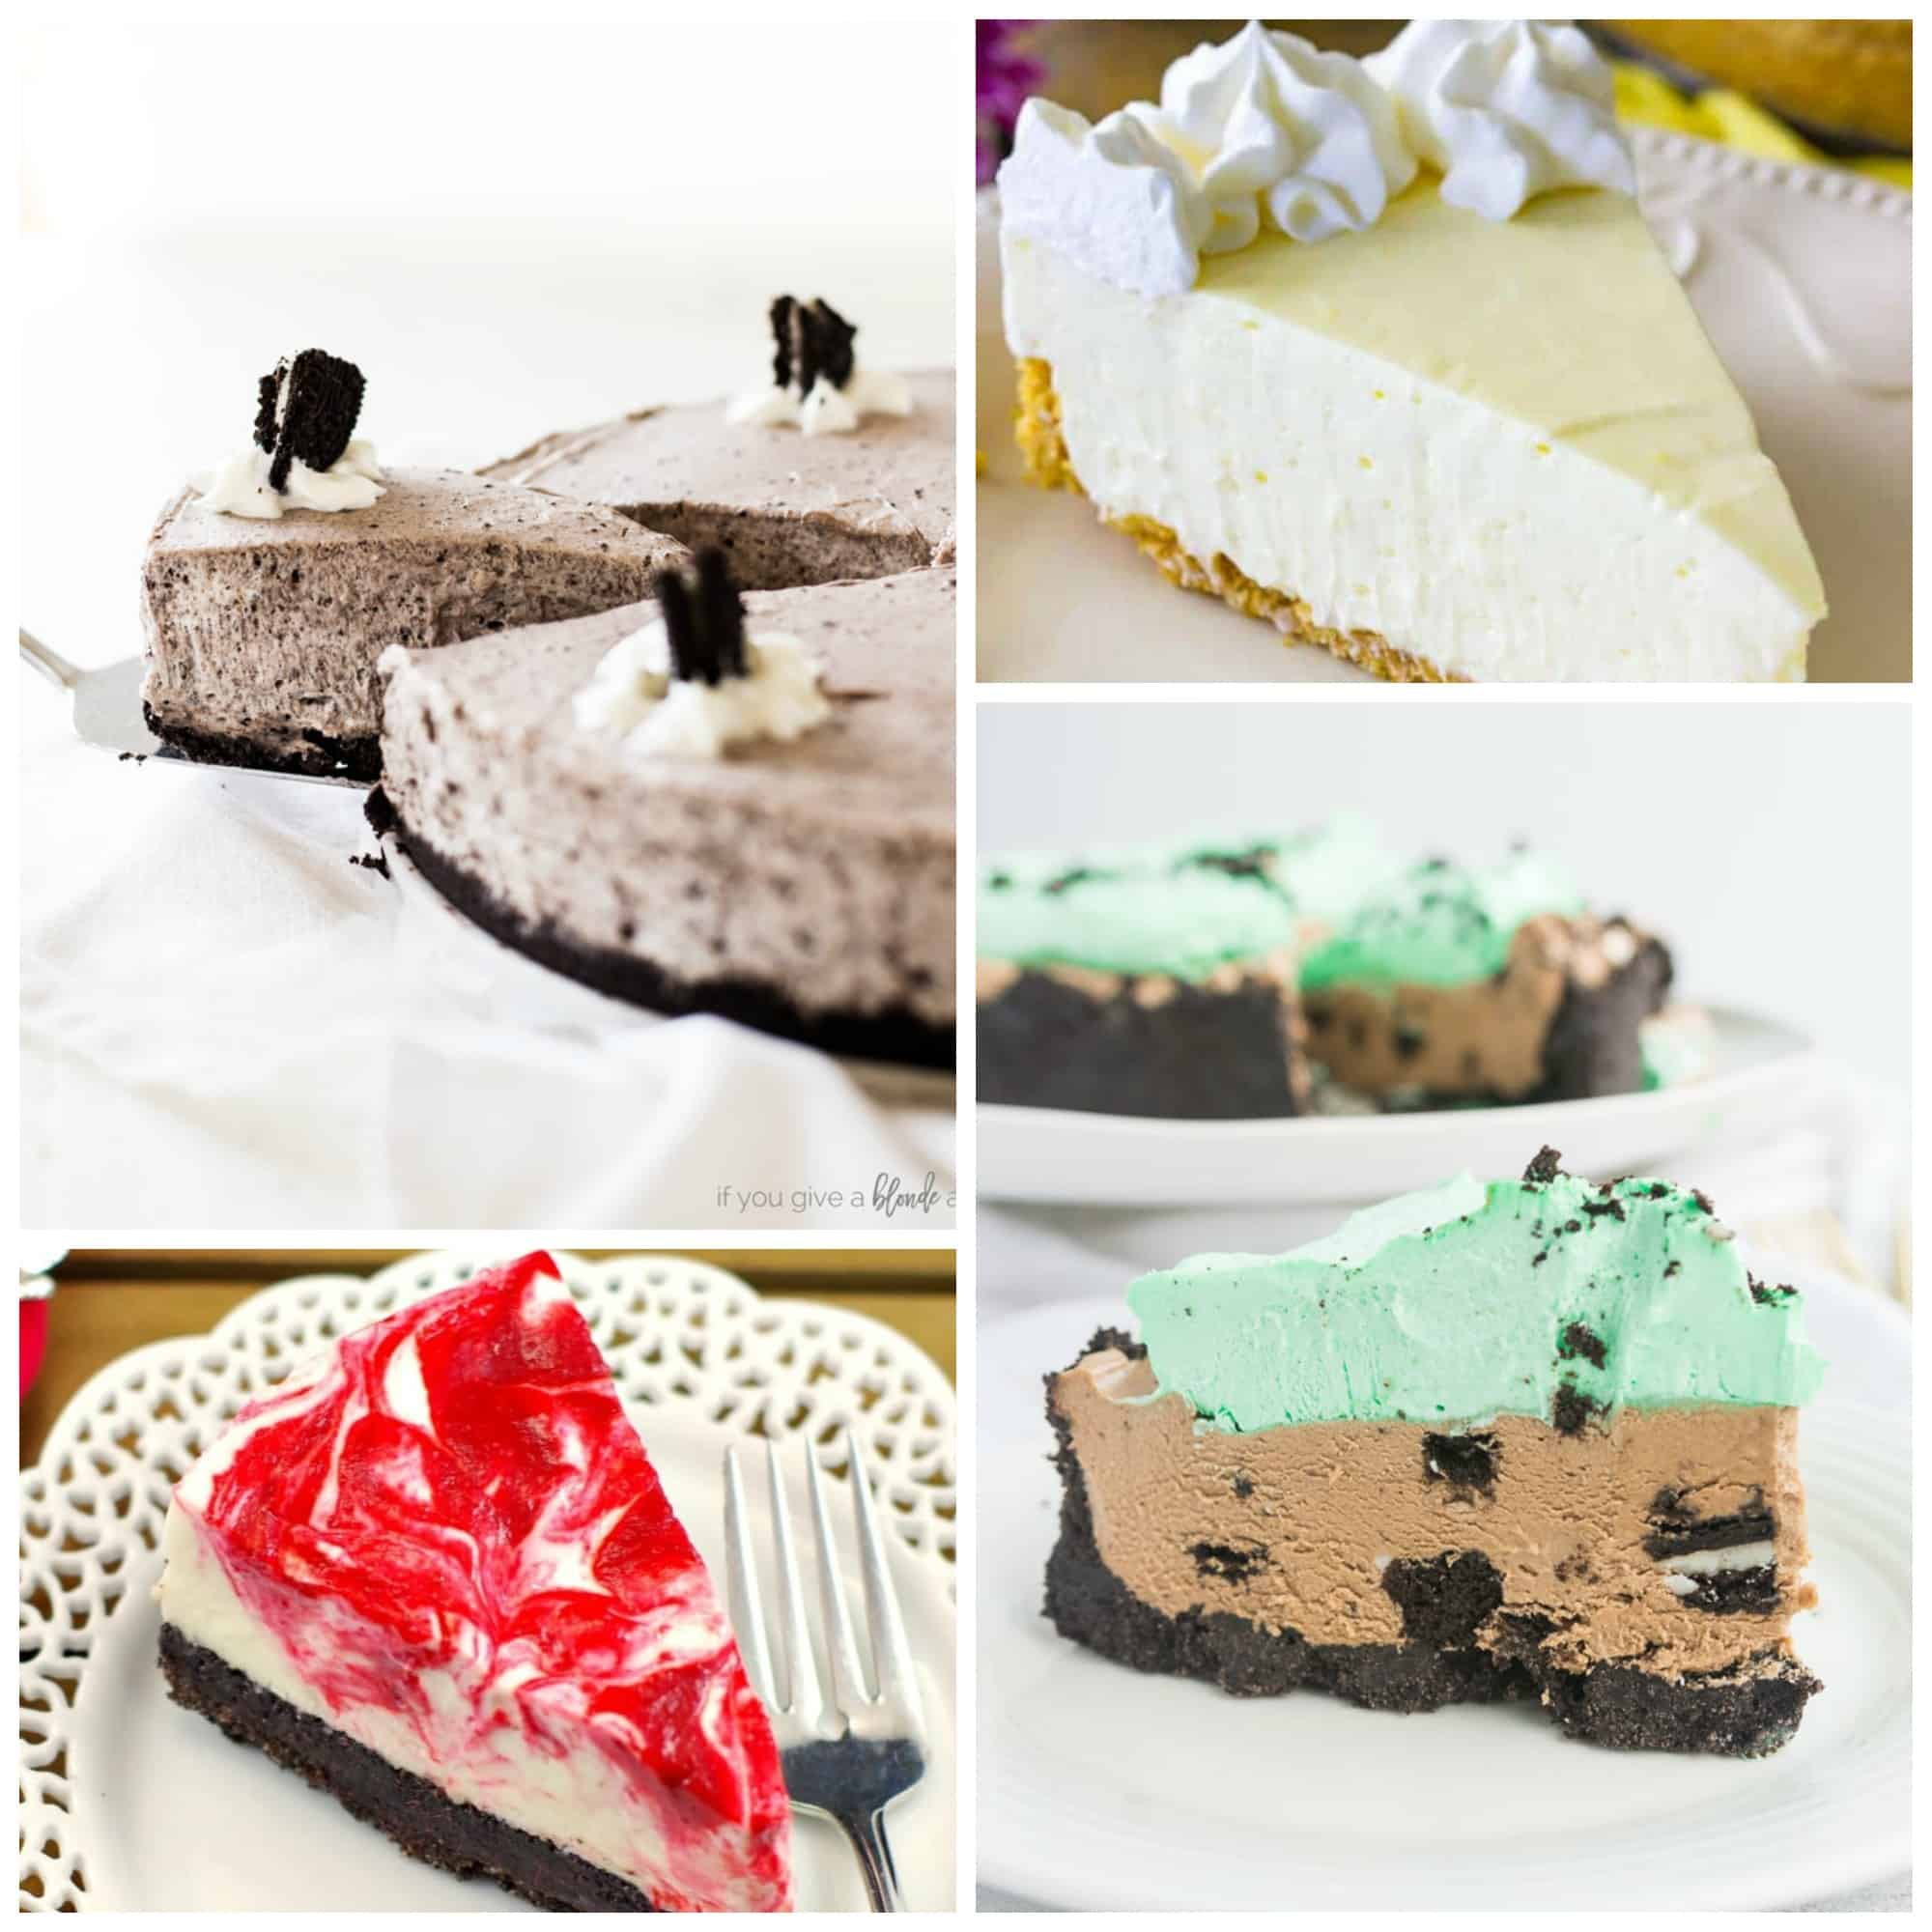 Image for No-bake cheesecake collage